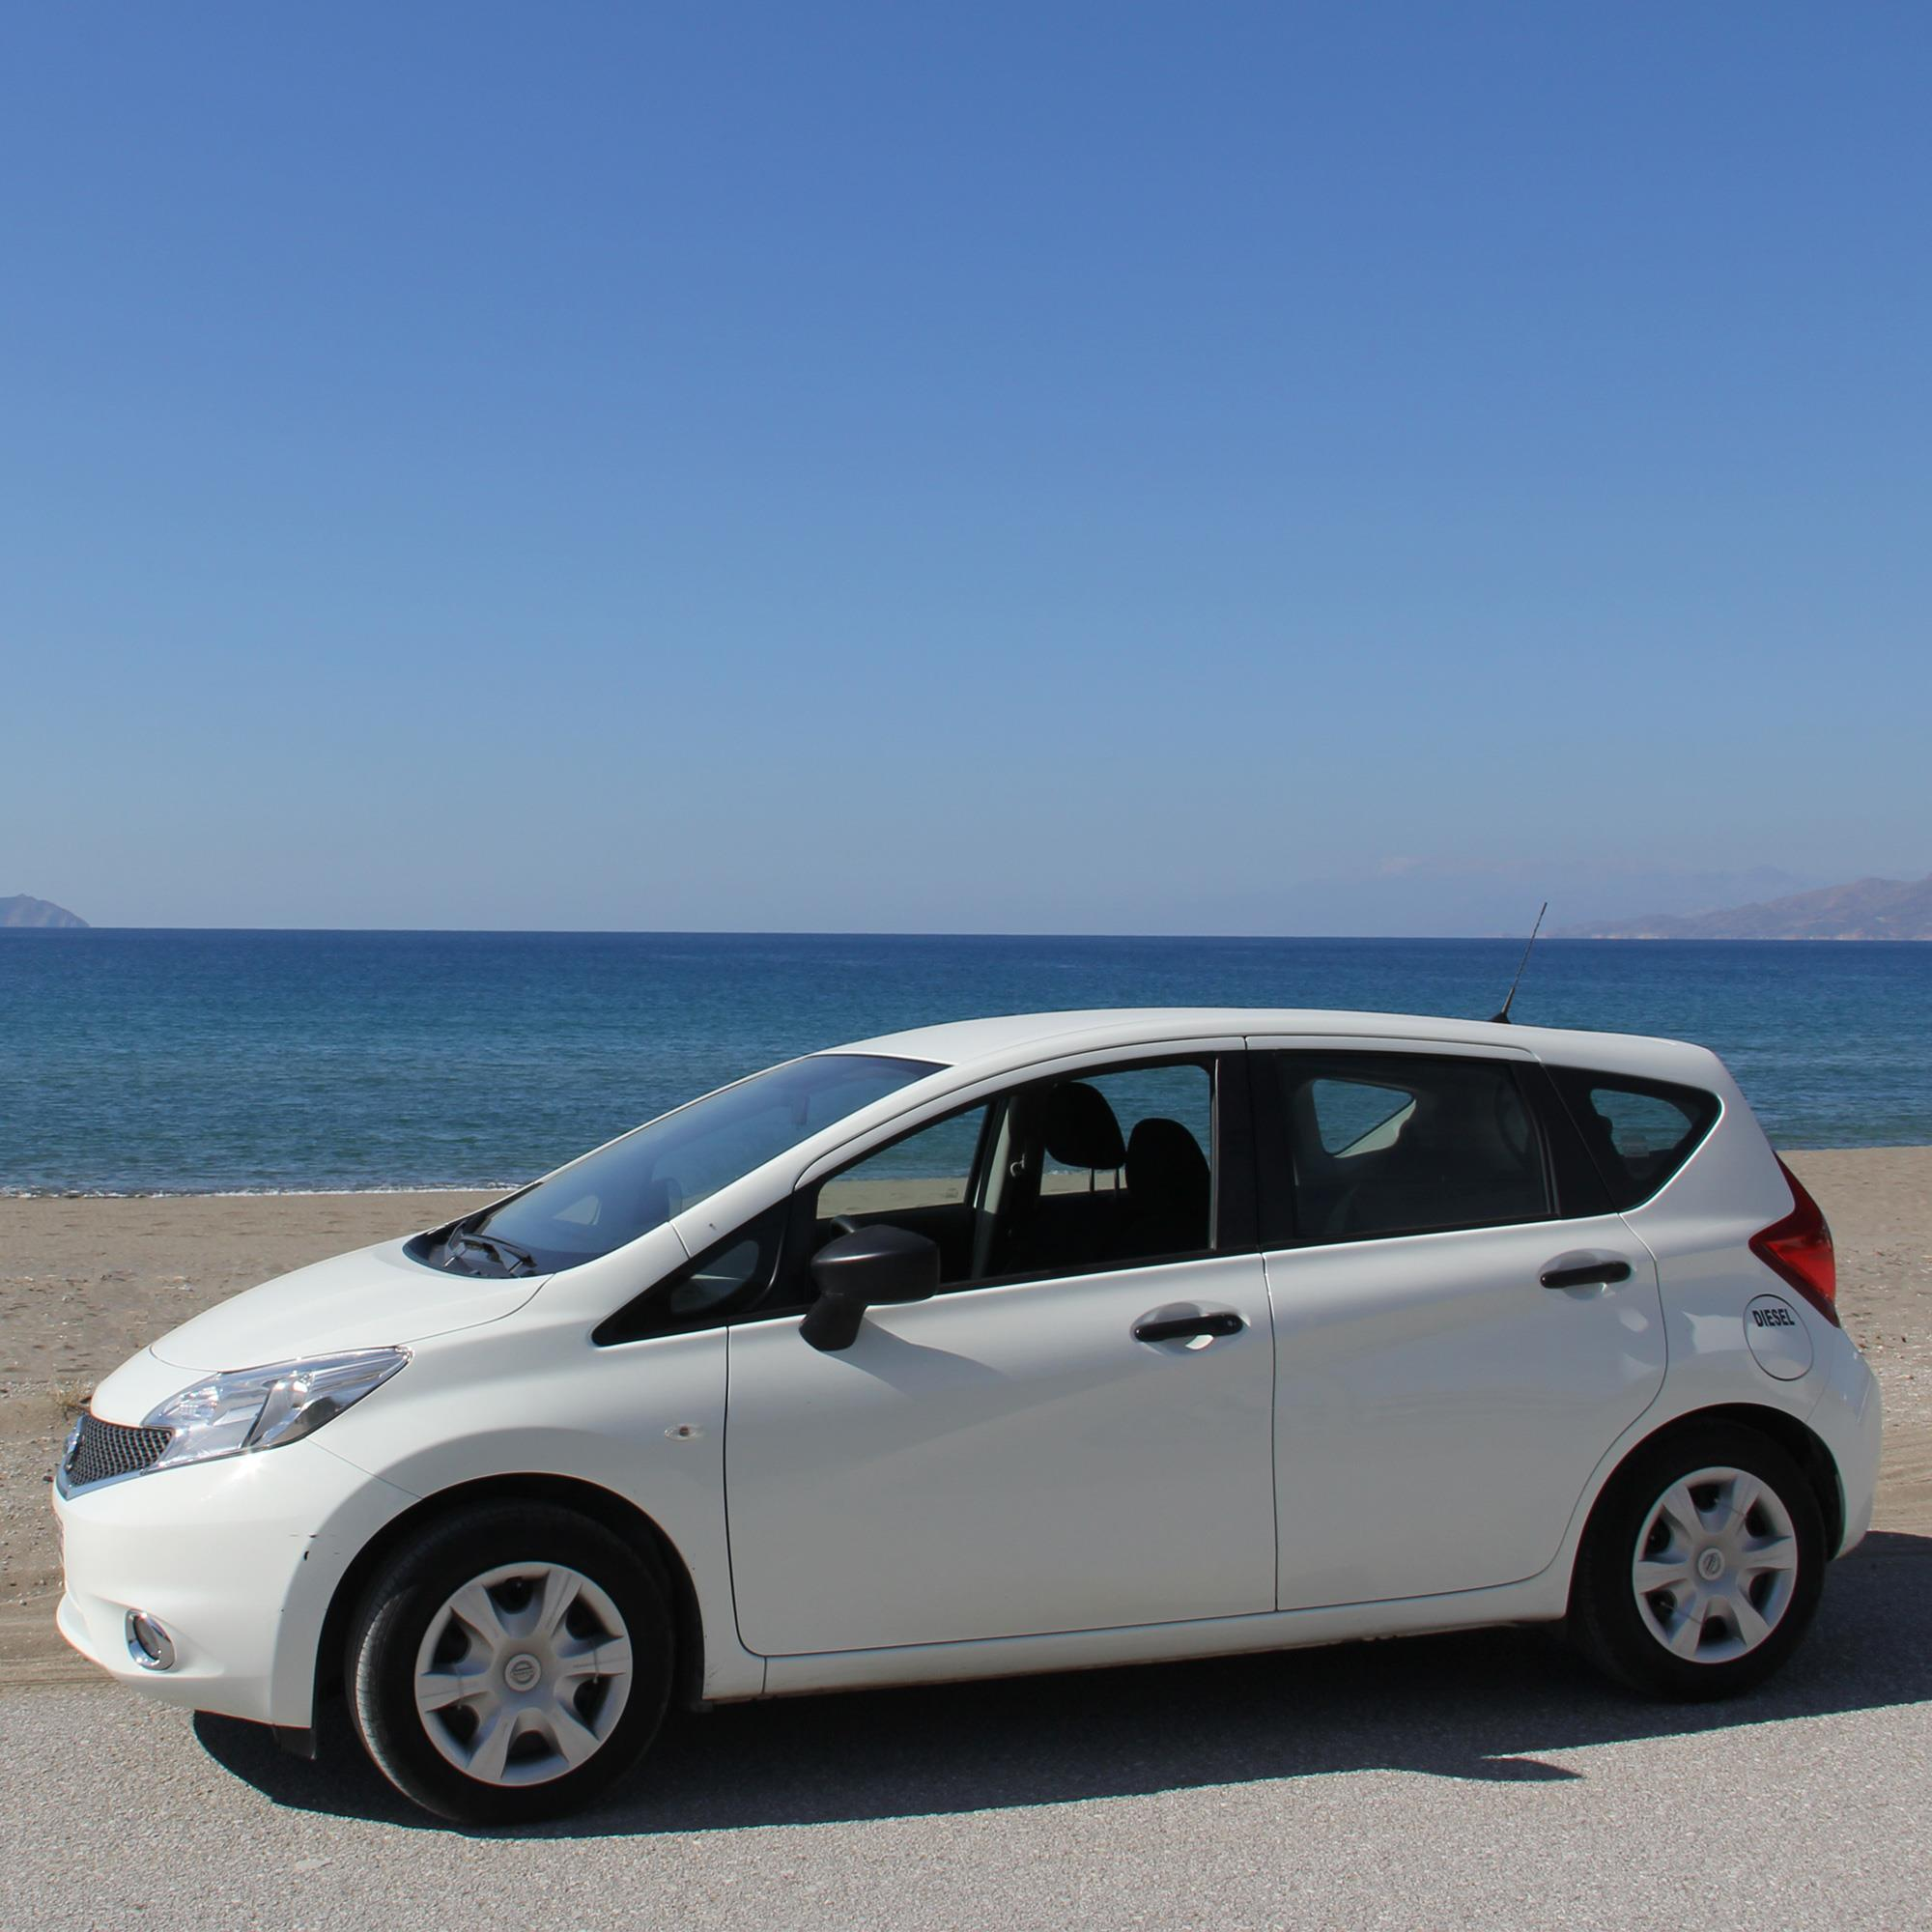 Category B6 - Nissan Note Diesel